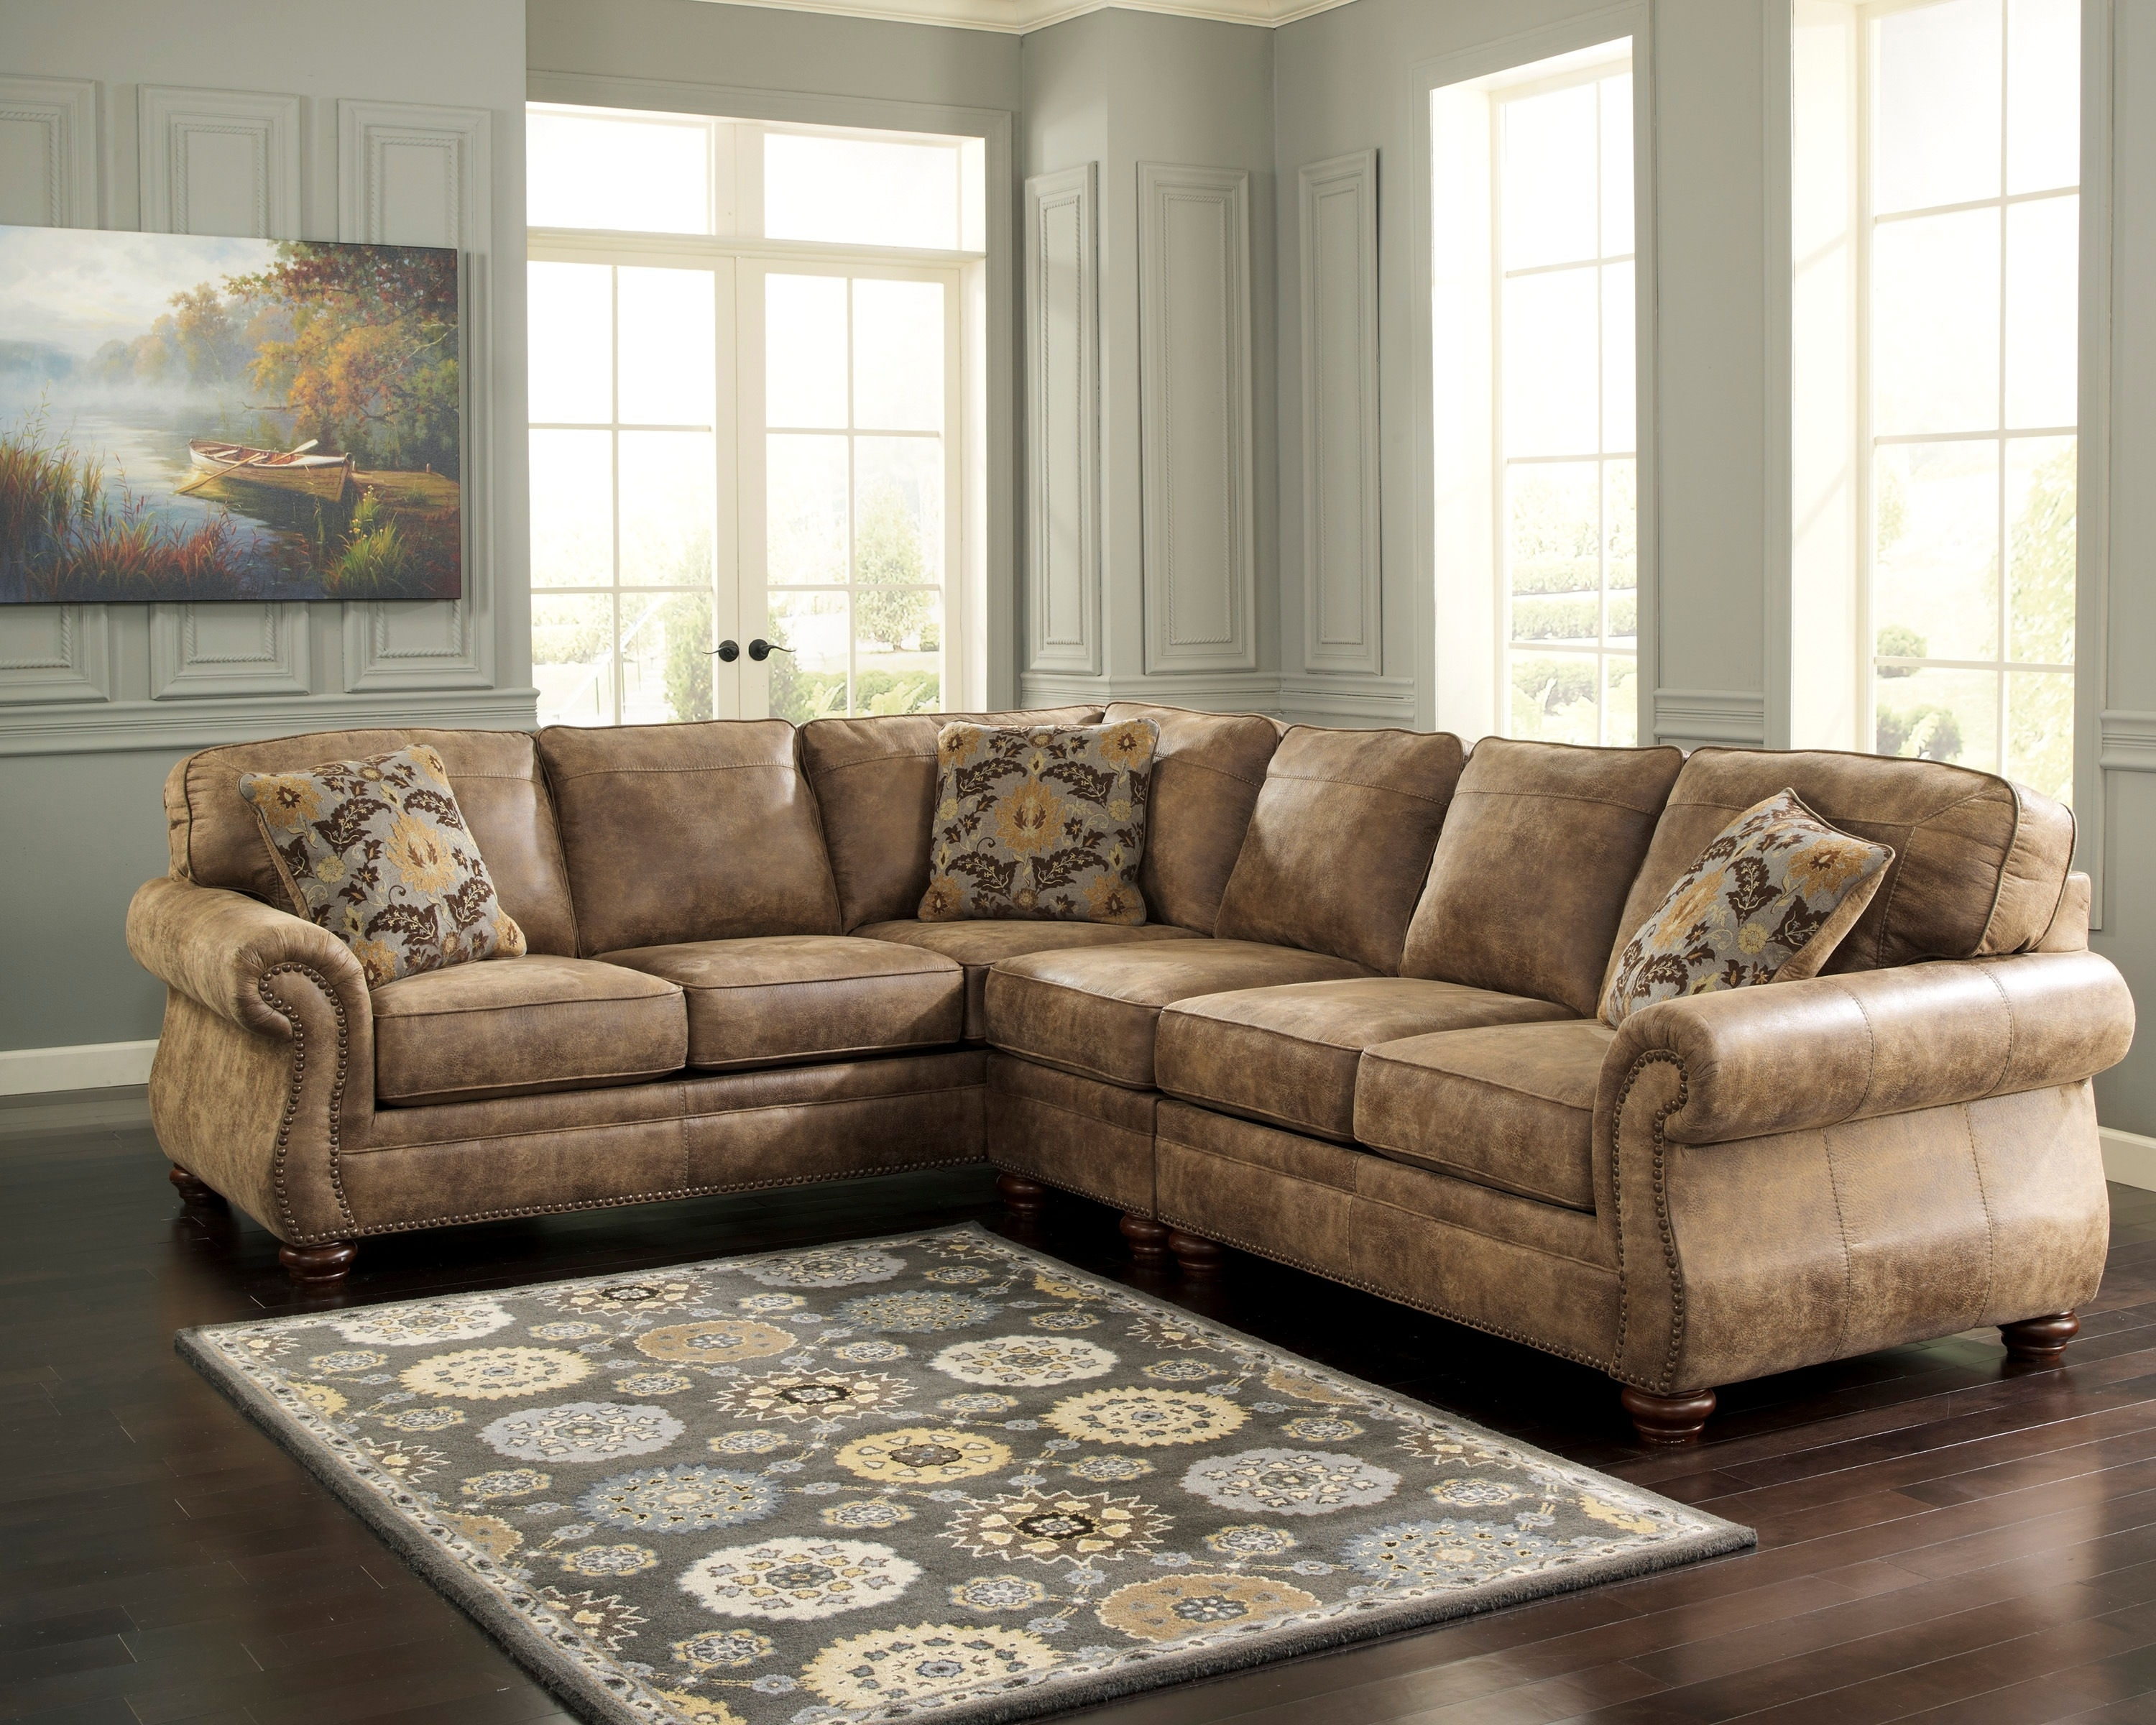 Laf Sofa Raf Loveseat | Baci Living Room Pertaining To Turdur 2 Piece Sectionals With Raf Loveseat (Image 11 of 25)